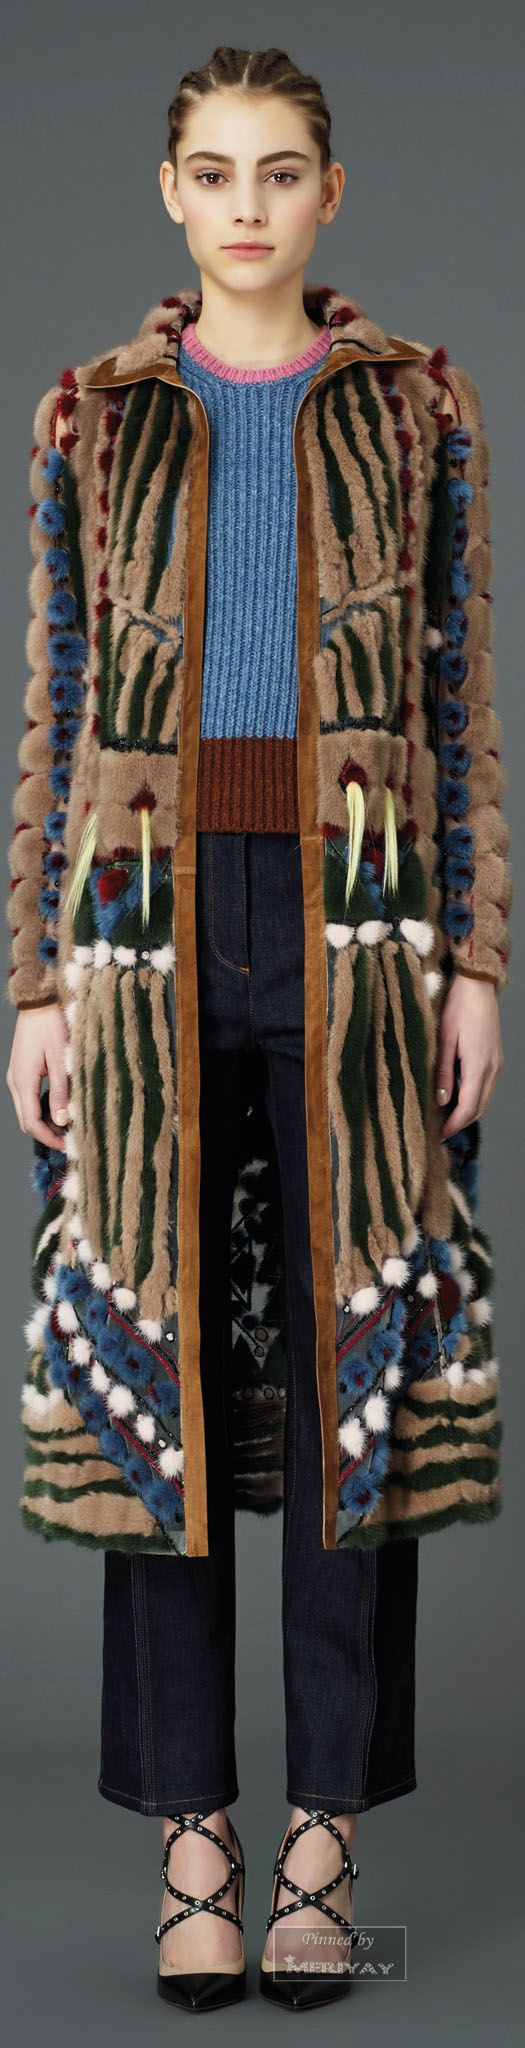 "Valentino.Pre-Fall 2015 ""And the LORD said to Moses, ""Go to the people and consecrate them today and tomorrow. Have them wash their clothes."" Exodus 19:10"